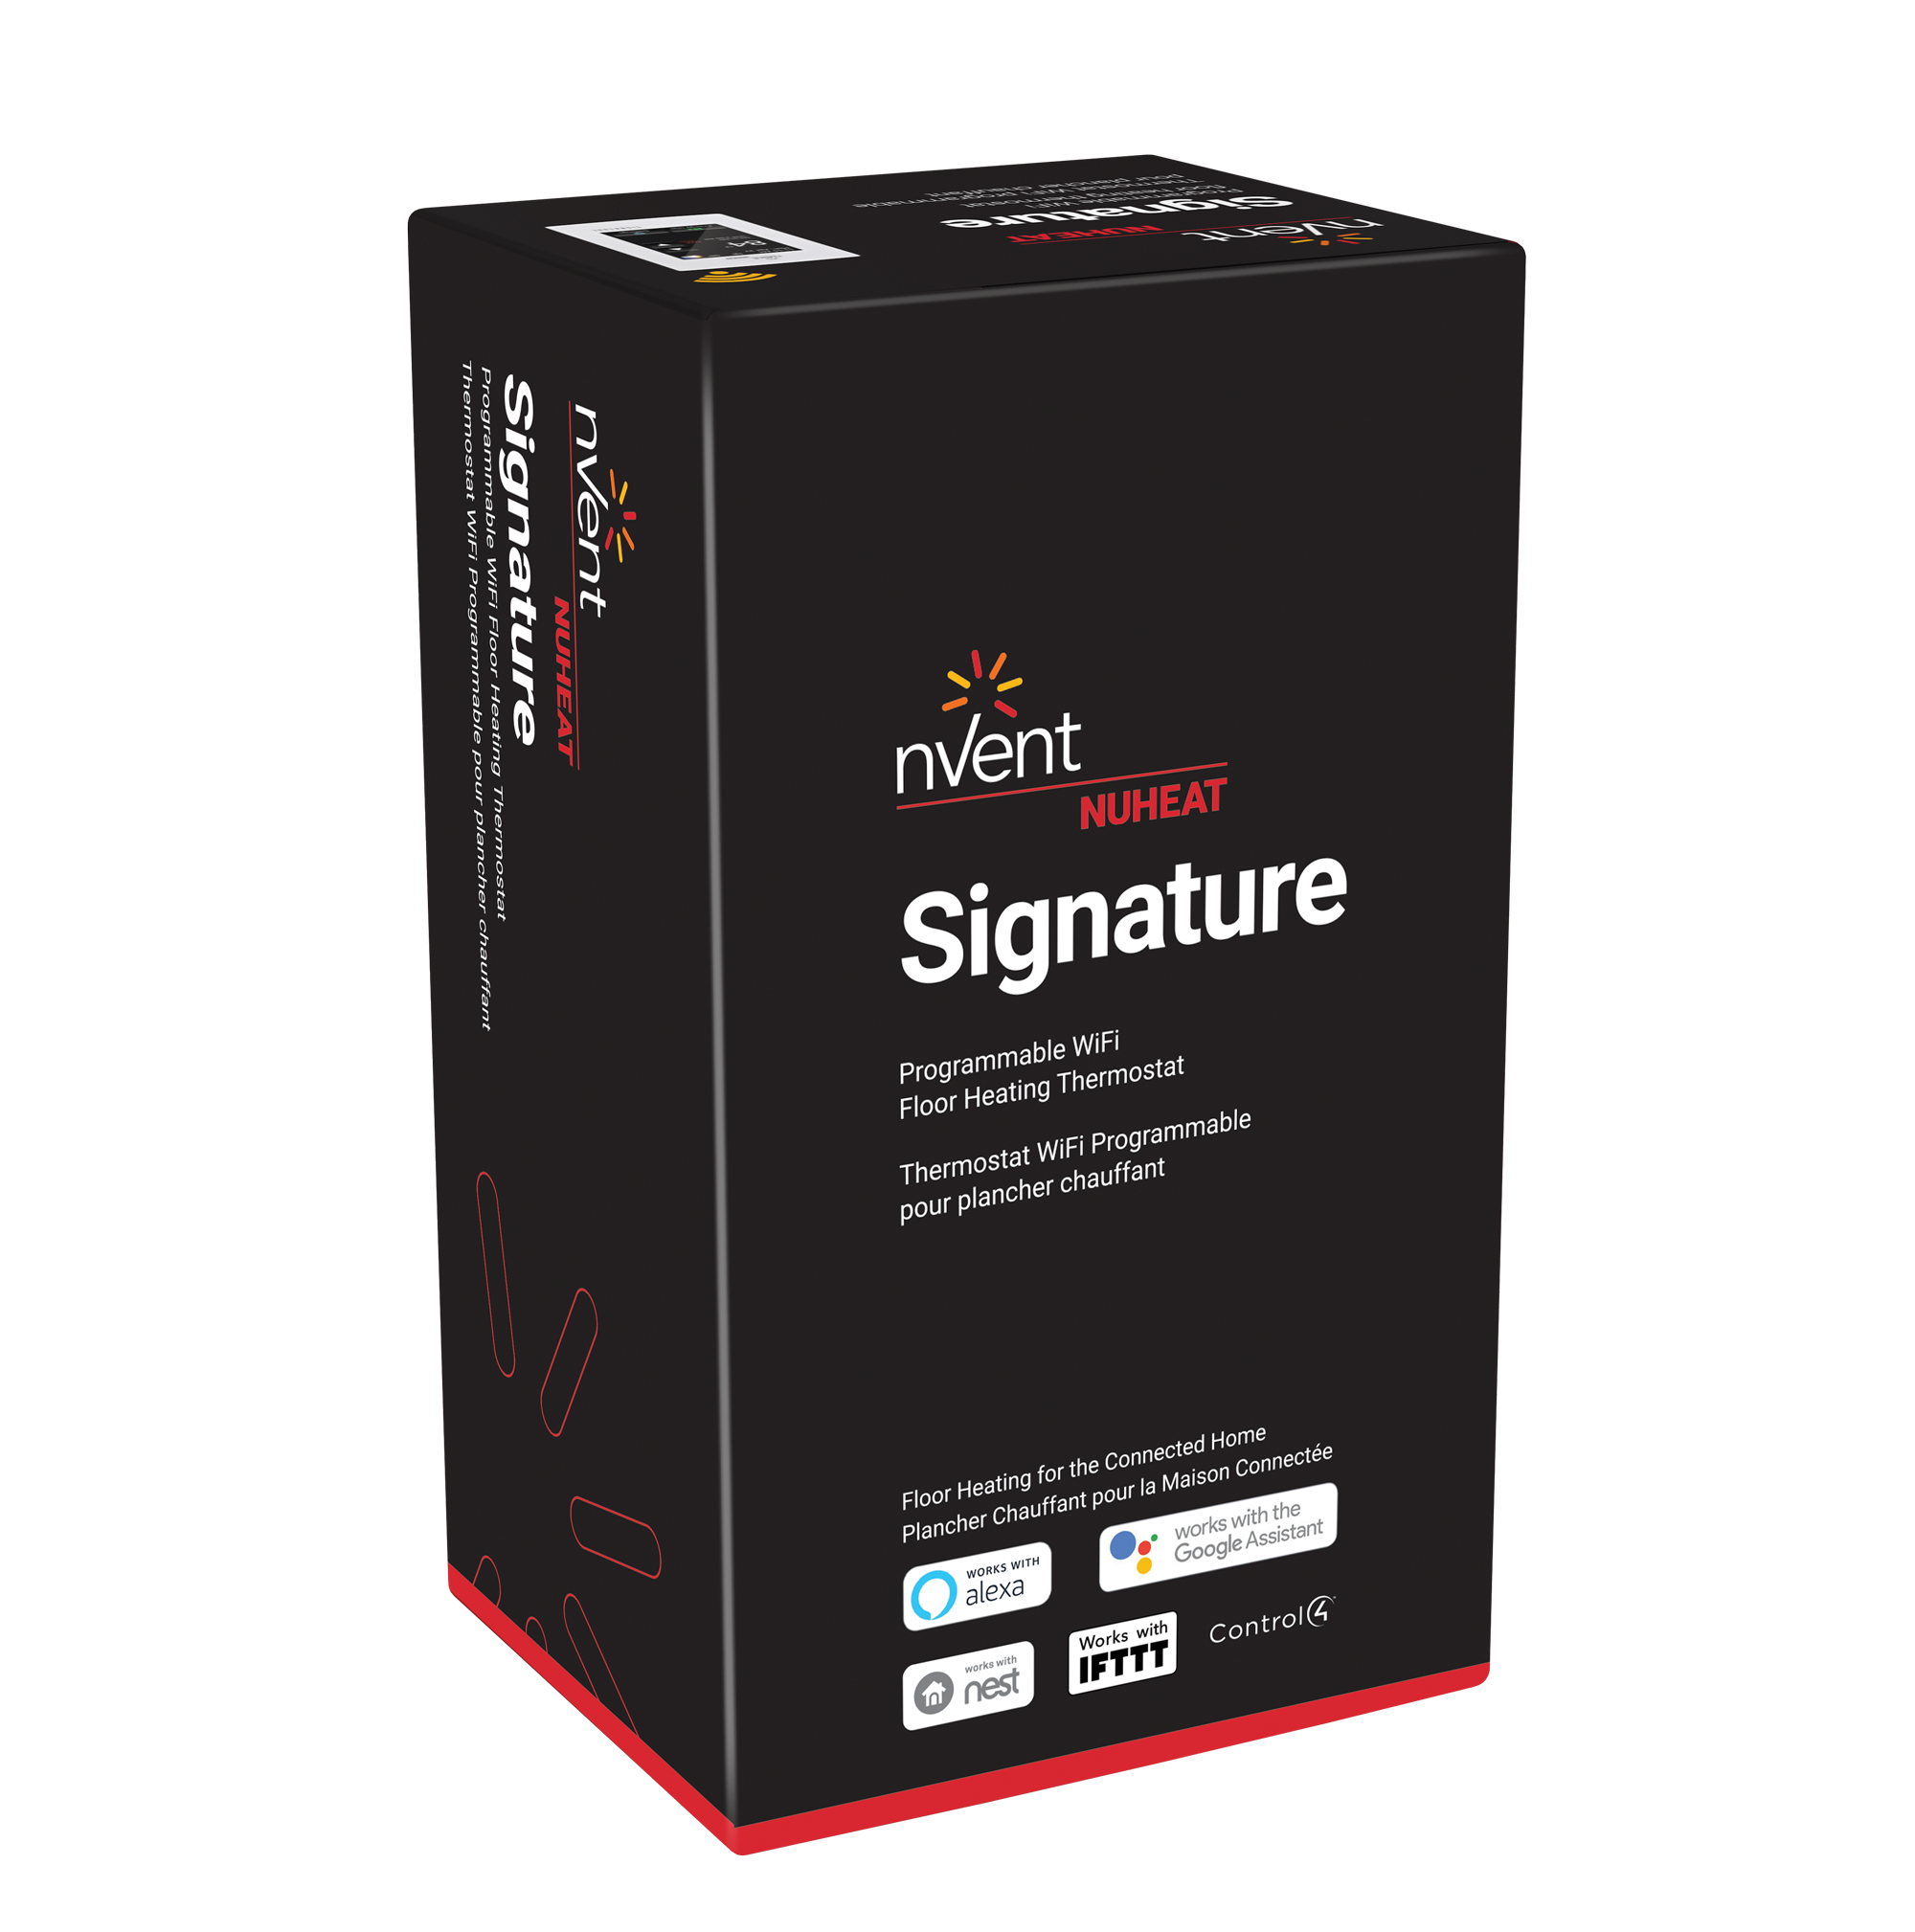 Signature Thermostat By Nuheat Floor Heating Heater Wiring Diagram As Well Portable Baseboard Heaters Together With 3d H60230 Sigtstatsleeve Ml 1812 Trp